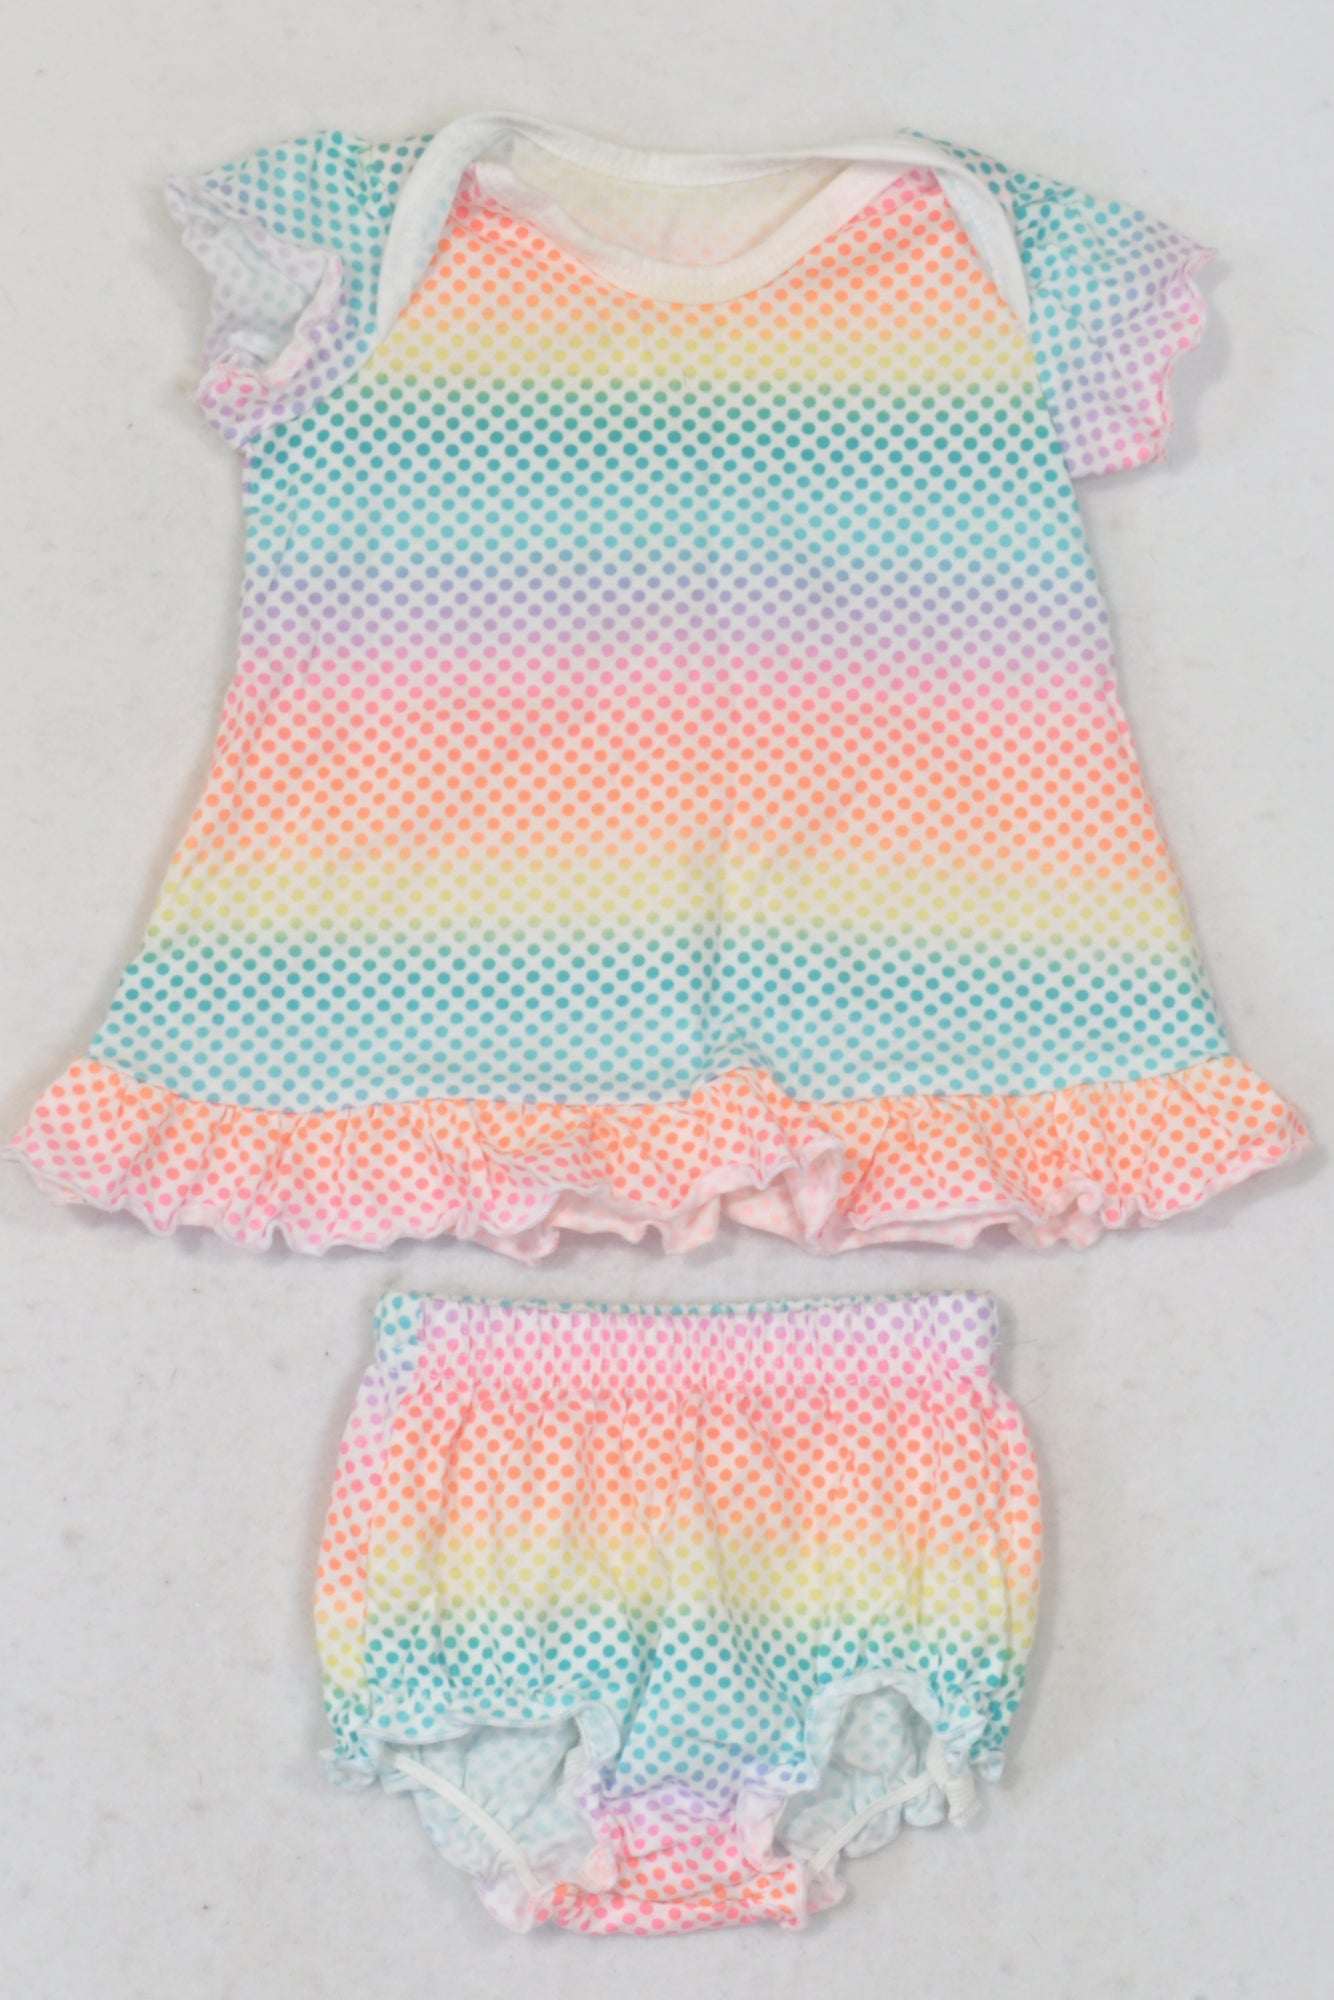 New Woolworths Multicolour Dotty Ombre Dress & Bloomer Outfit Girls 0-3 months